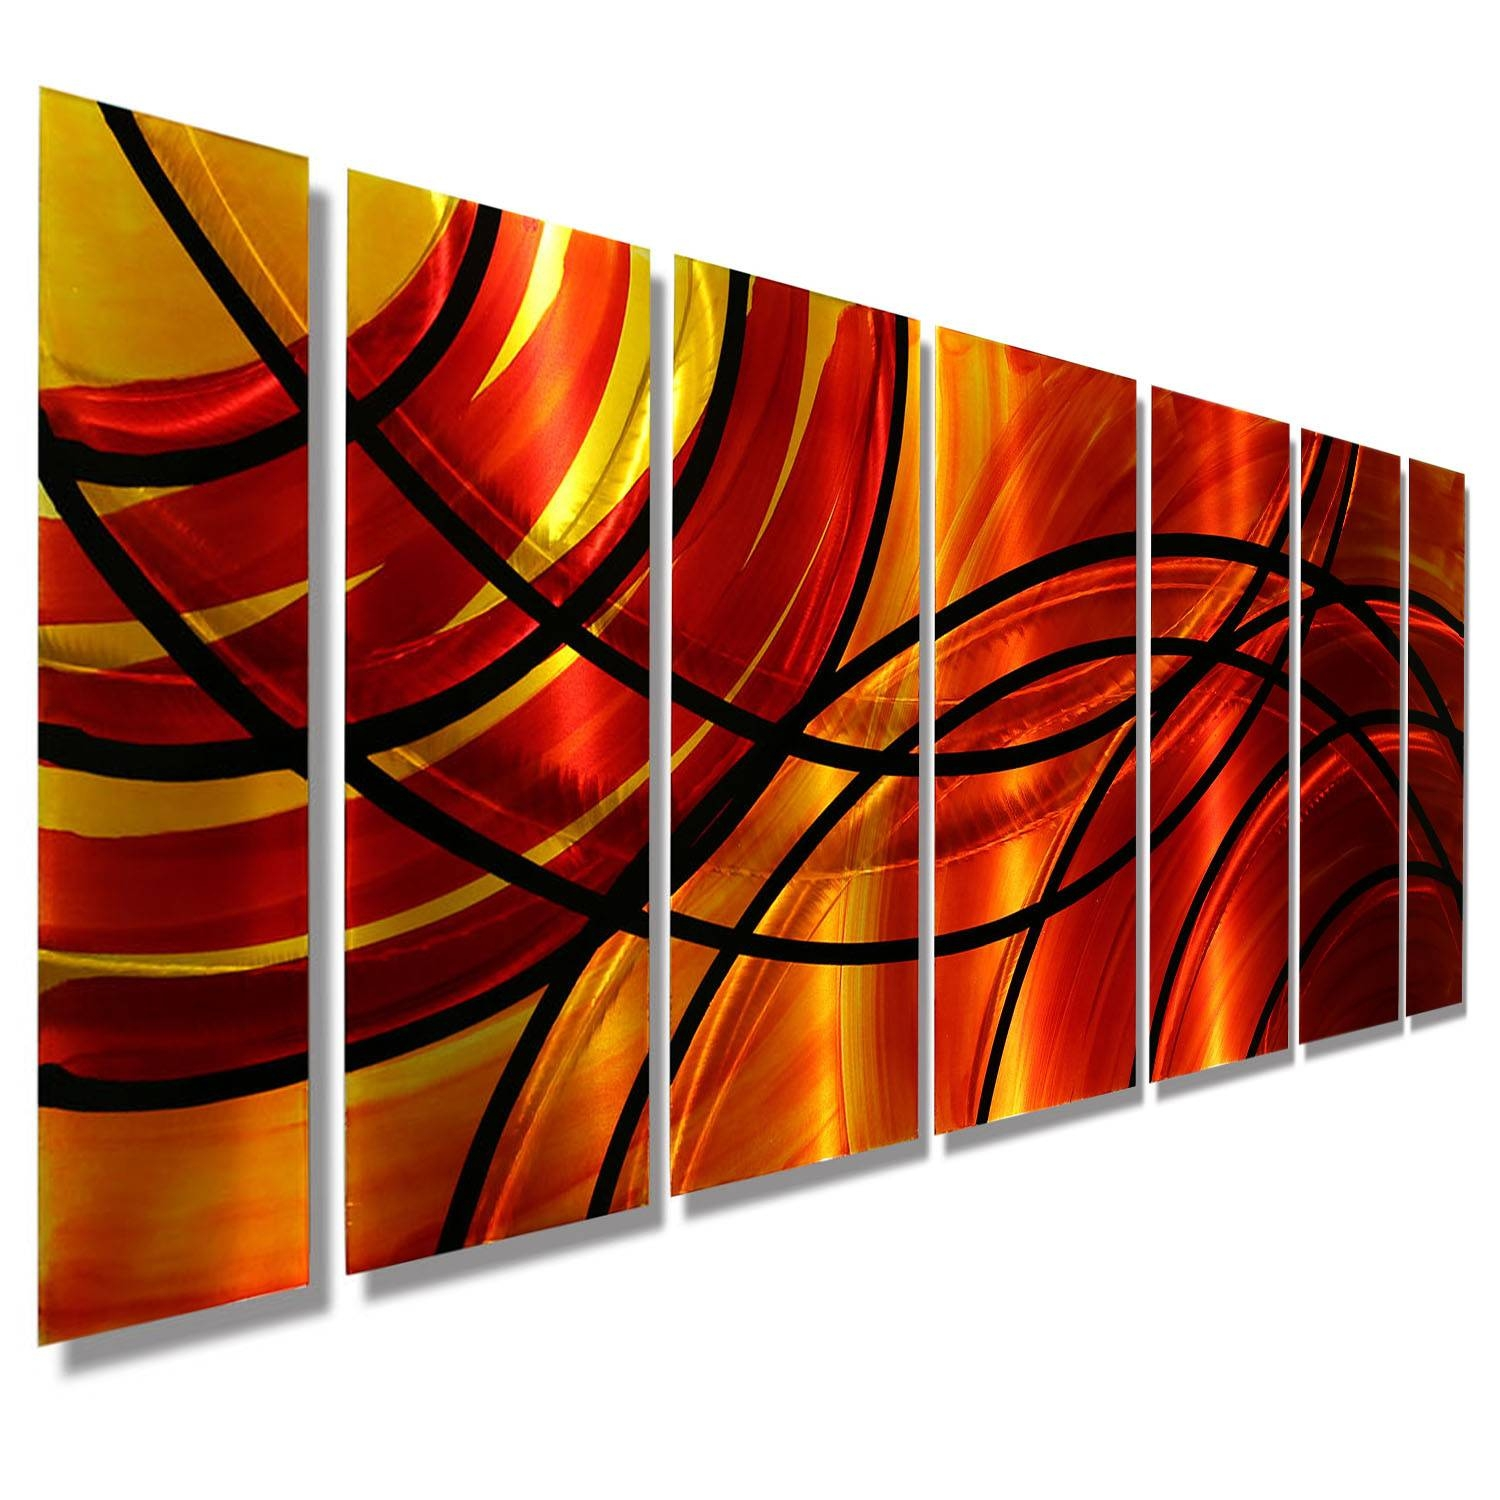 Boundfire – Red & Orange Modern Metal Wall Artjon Allen With Regard To Newest Painted Metal Wall Art (Gallery 7 of 20)